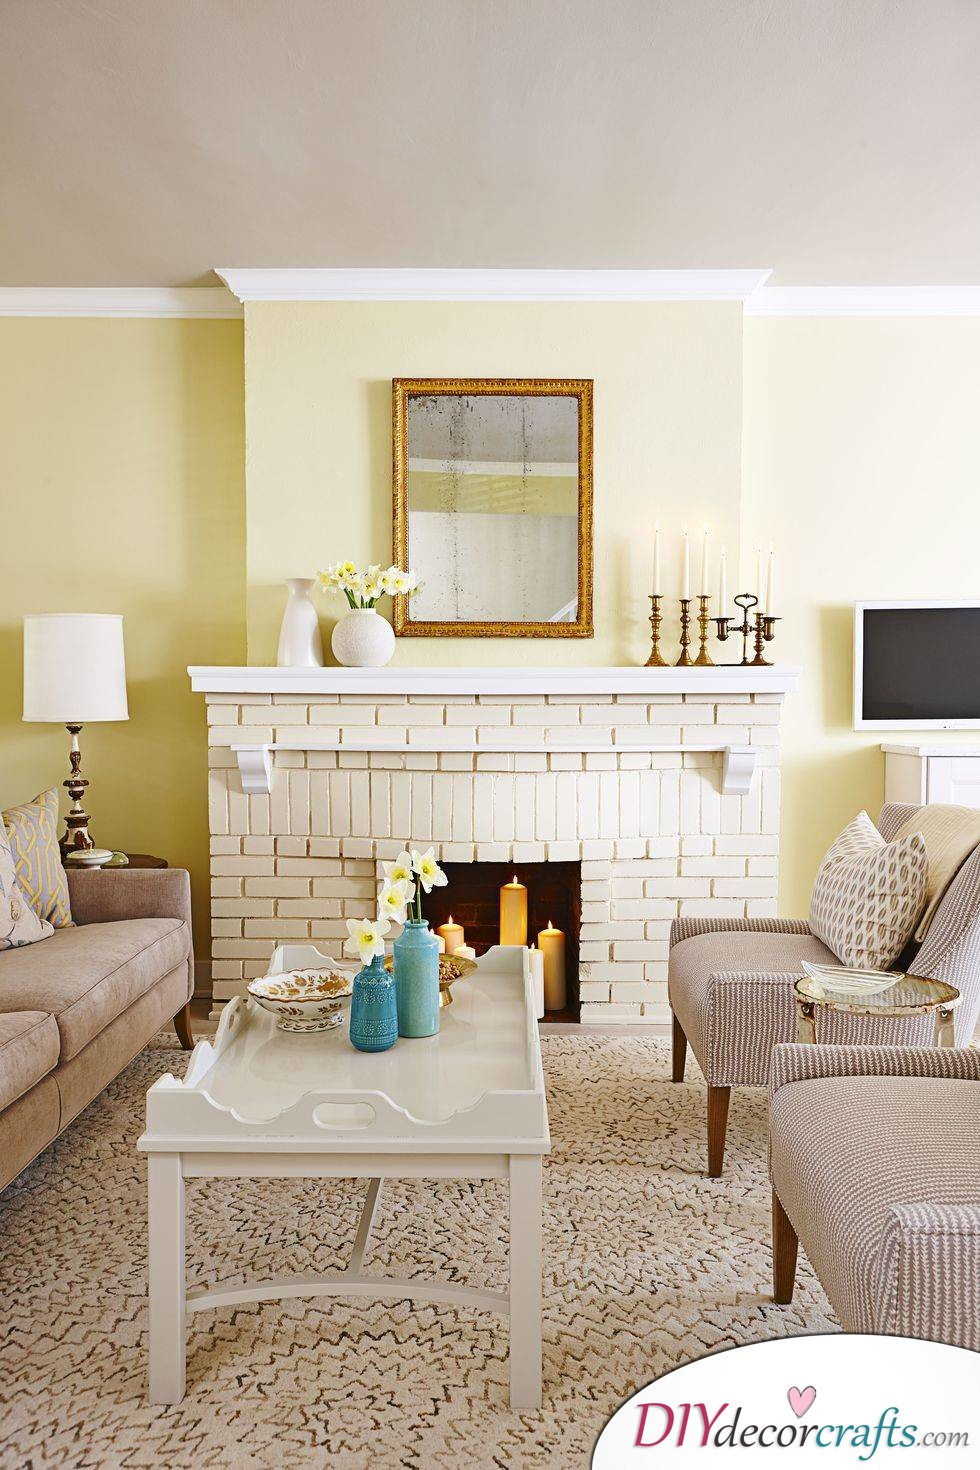 Renovate Your Home With These Simple Home Renovation Ideas, Painted Bricks Fireplace